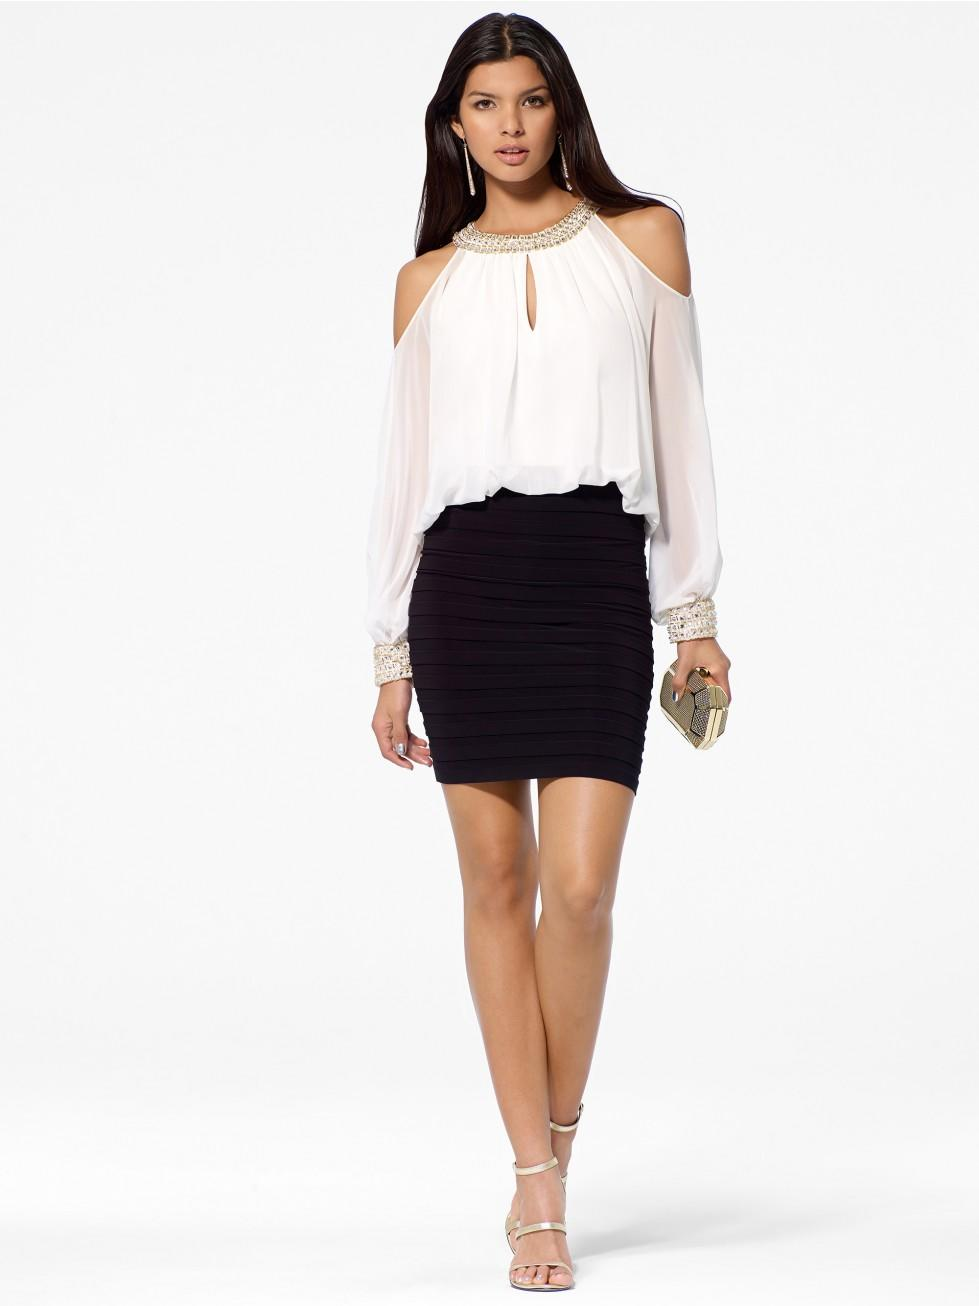 black amp white blouson dress from cach233 cocktail